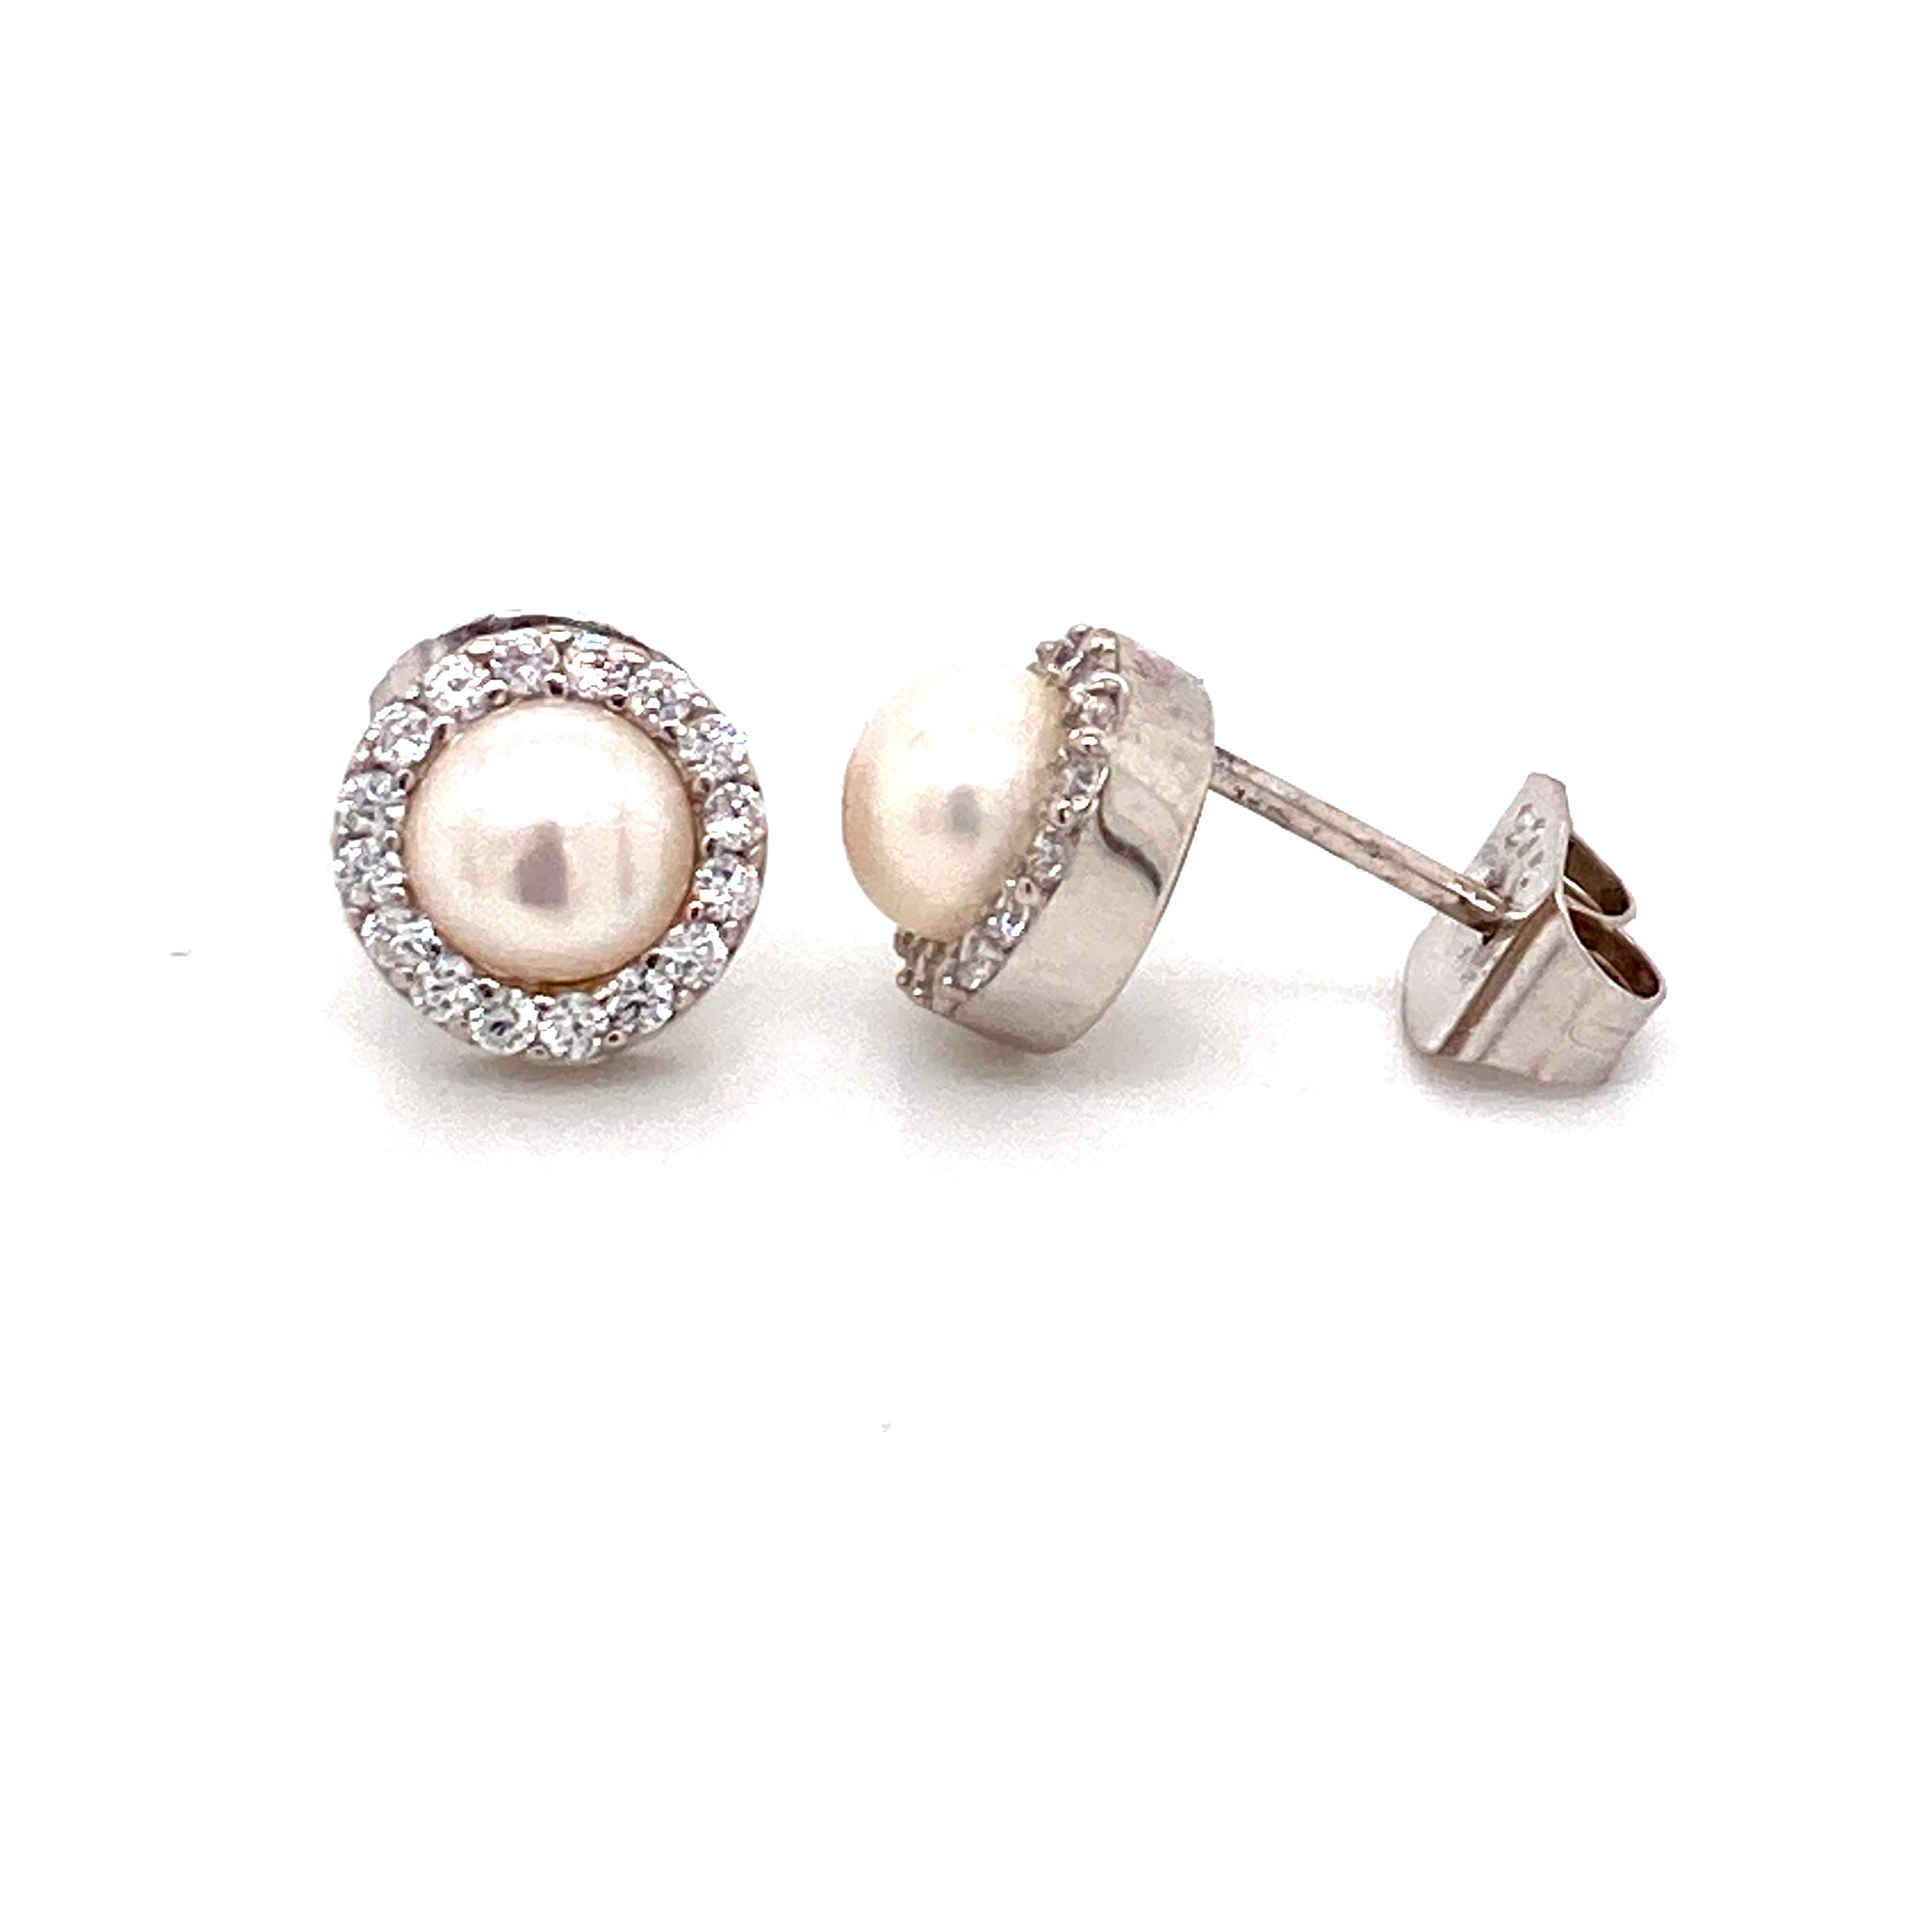 Sterling silver pearl cz stud earrings - Red Carpet Jewellers